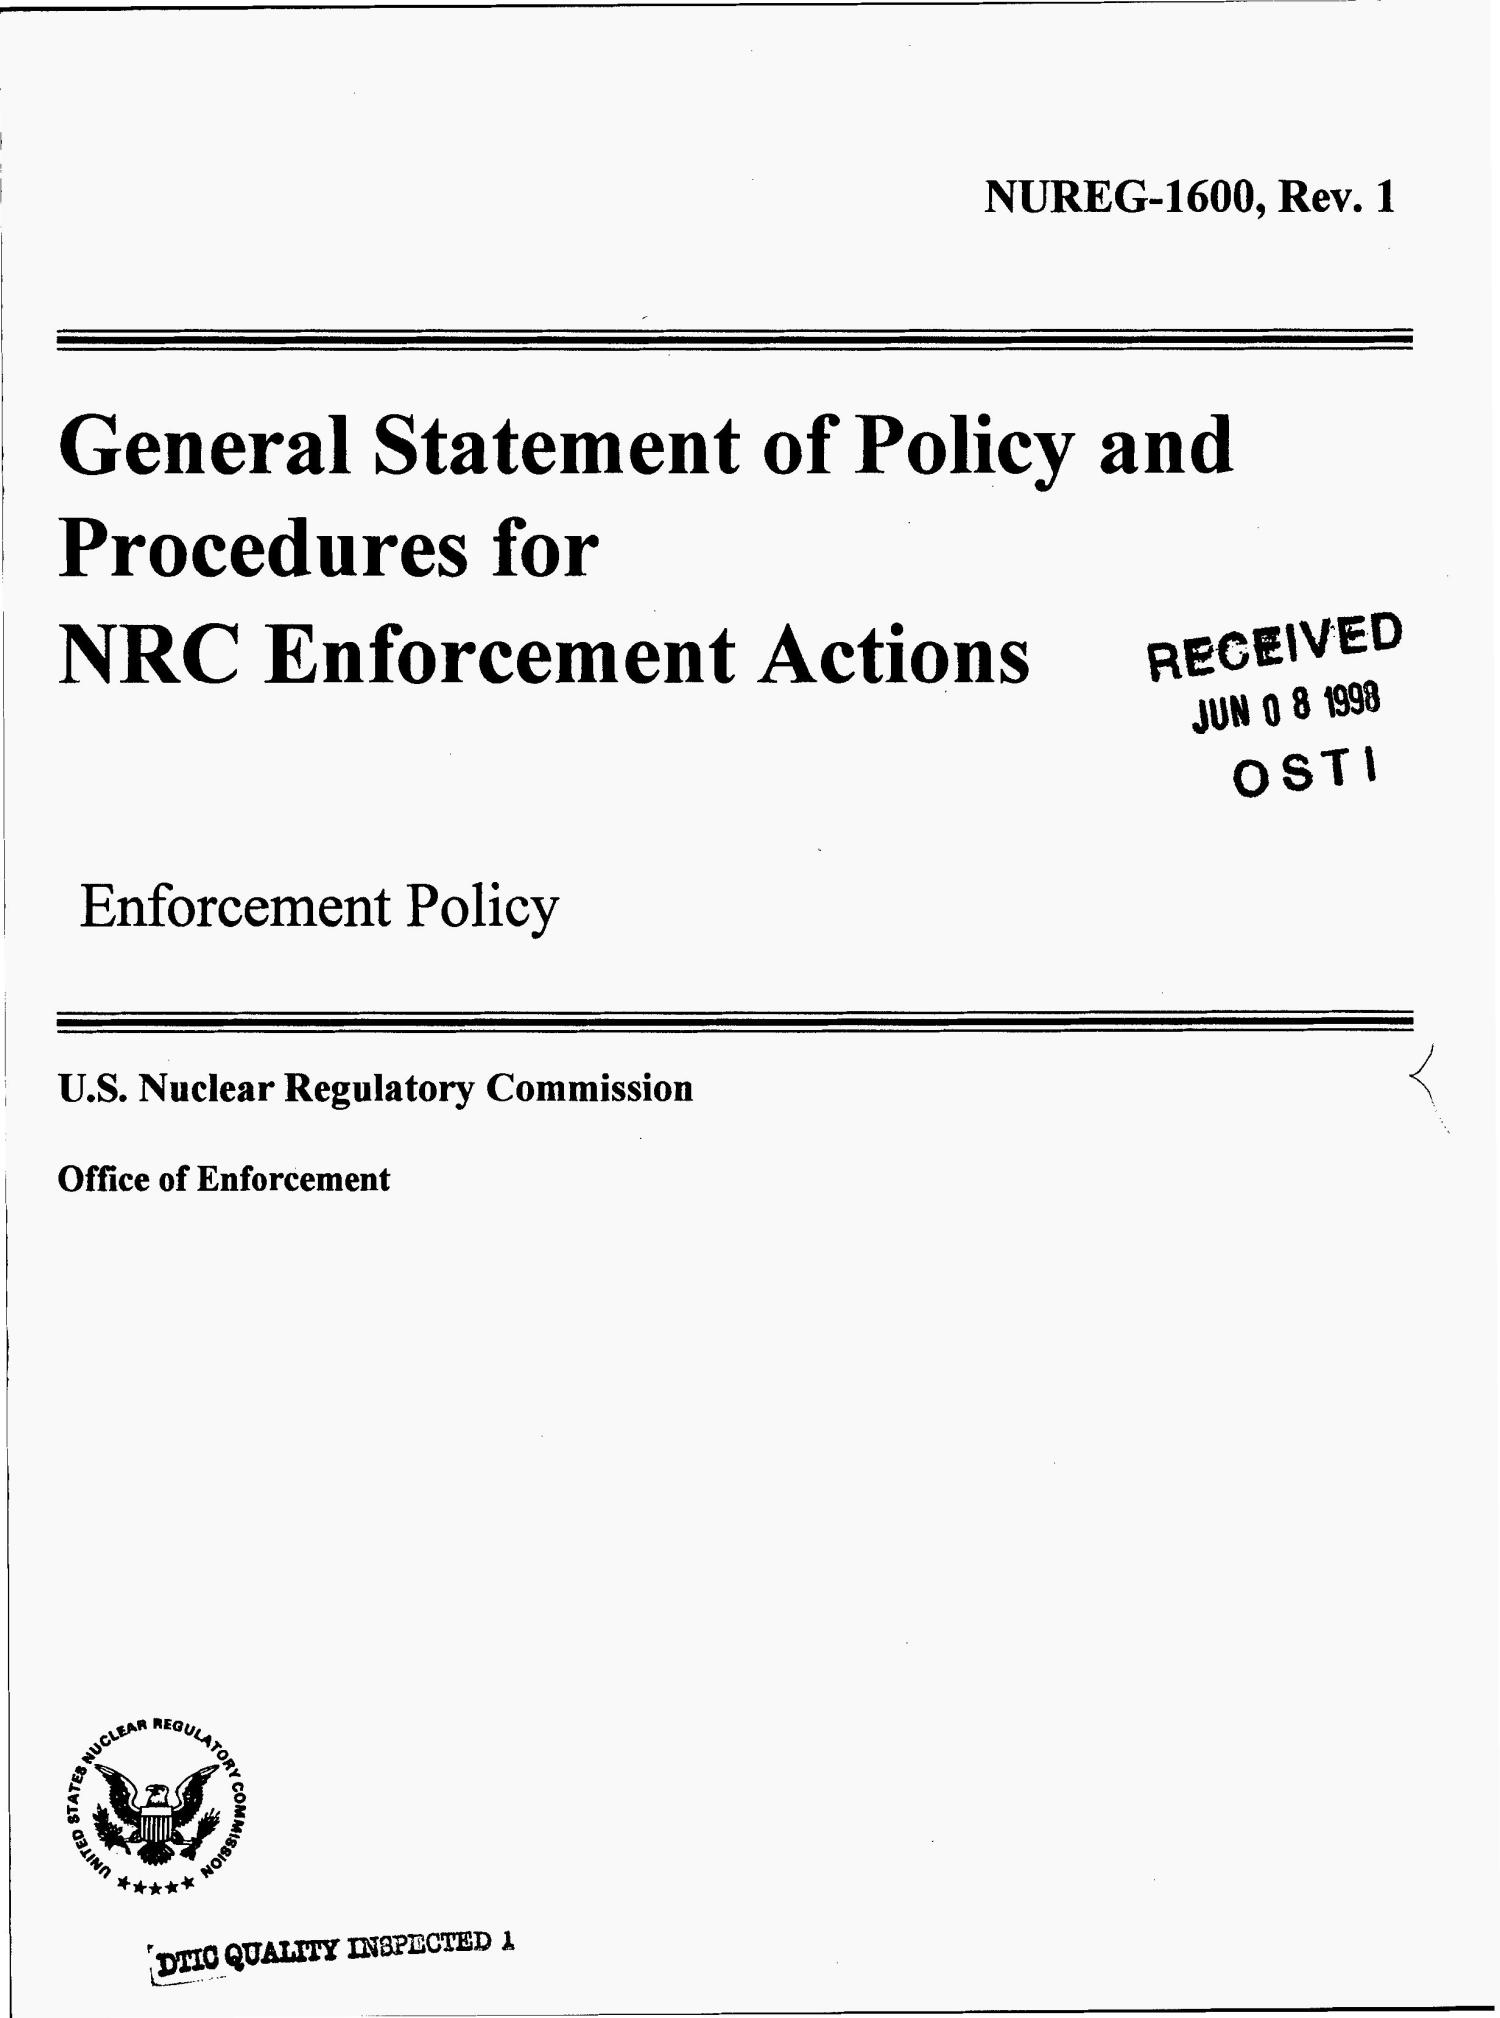 General statement of policy and procedures for NRC enforcement actions: Enforcement policy. Revision 1                                                                                                      [Sequence #]: 1 of 32